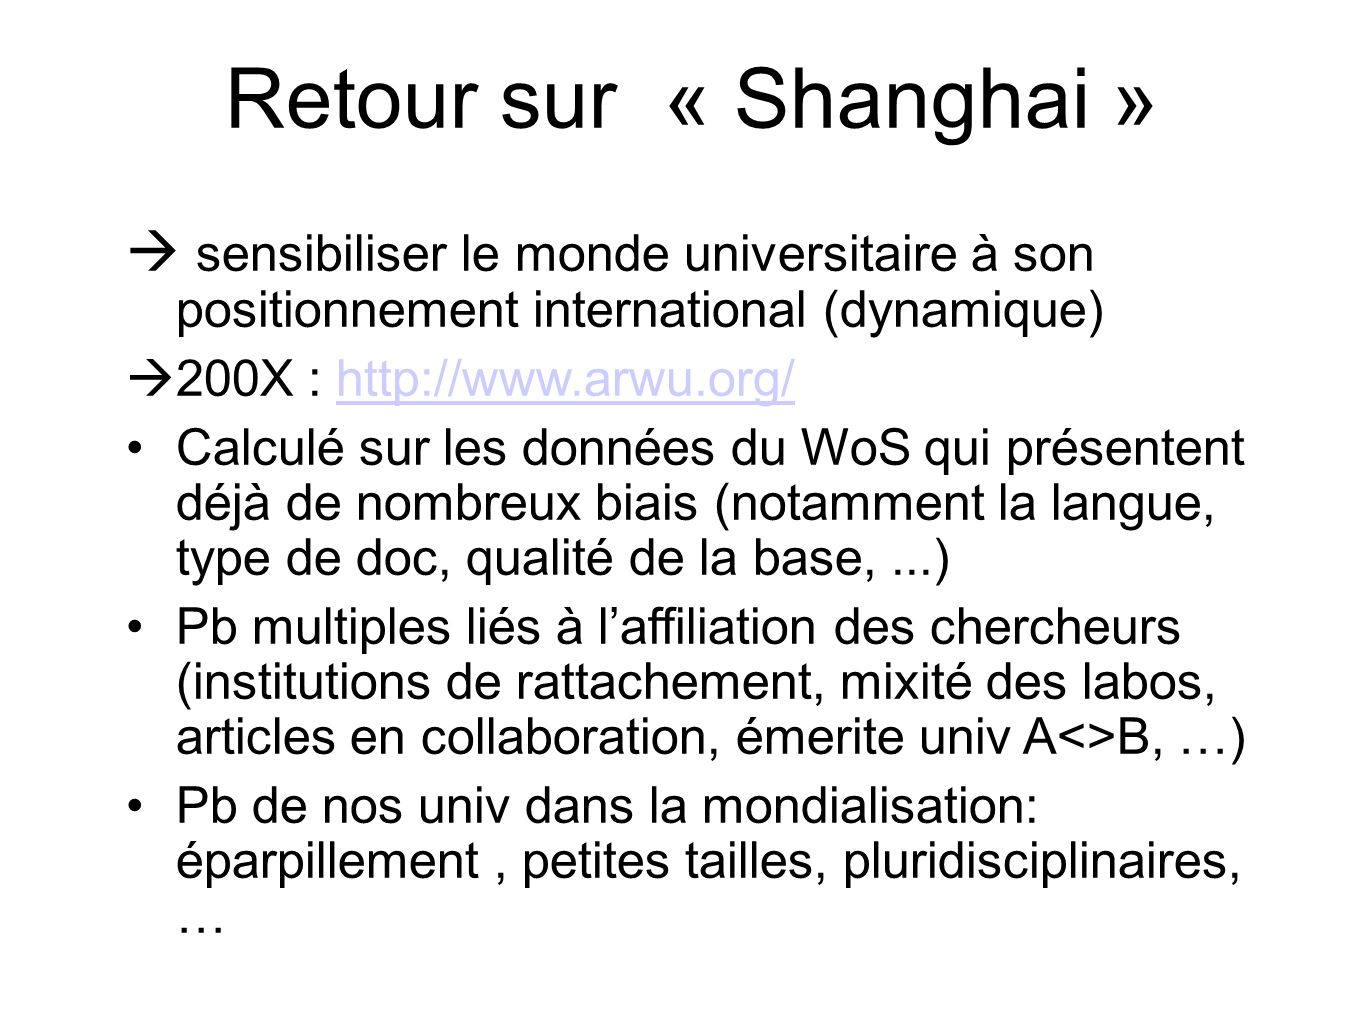 Retour sur « Shanghai » sensibiliser le monde universitaire à son positionnement international (dynamique)